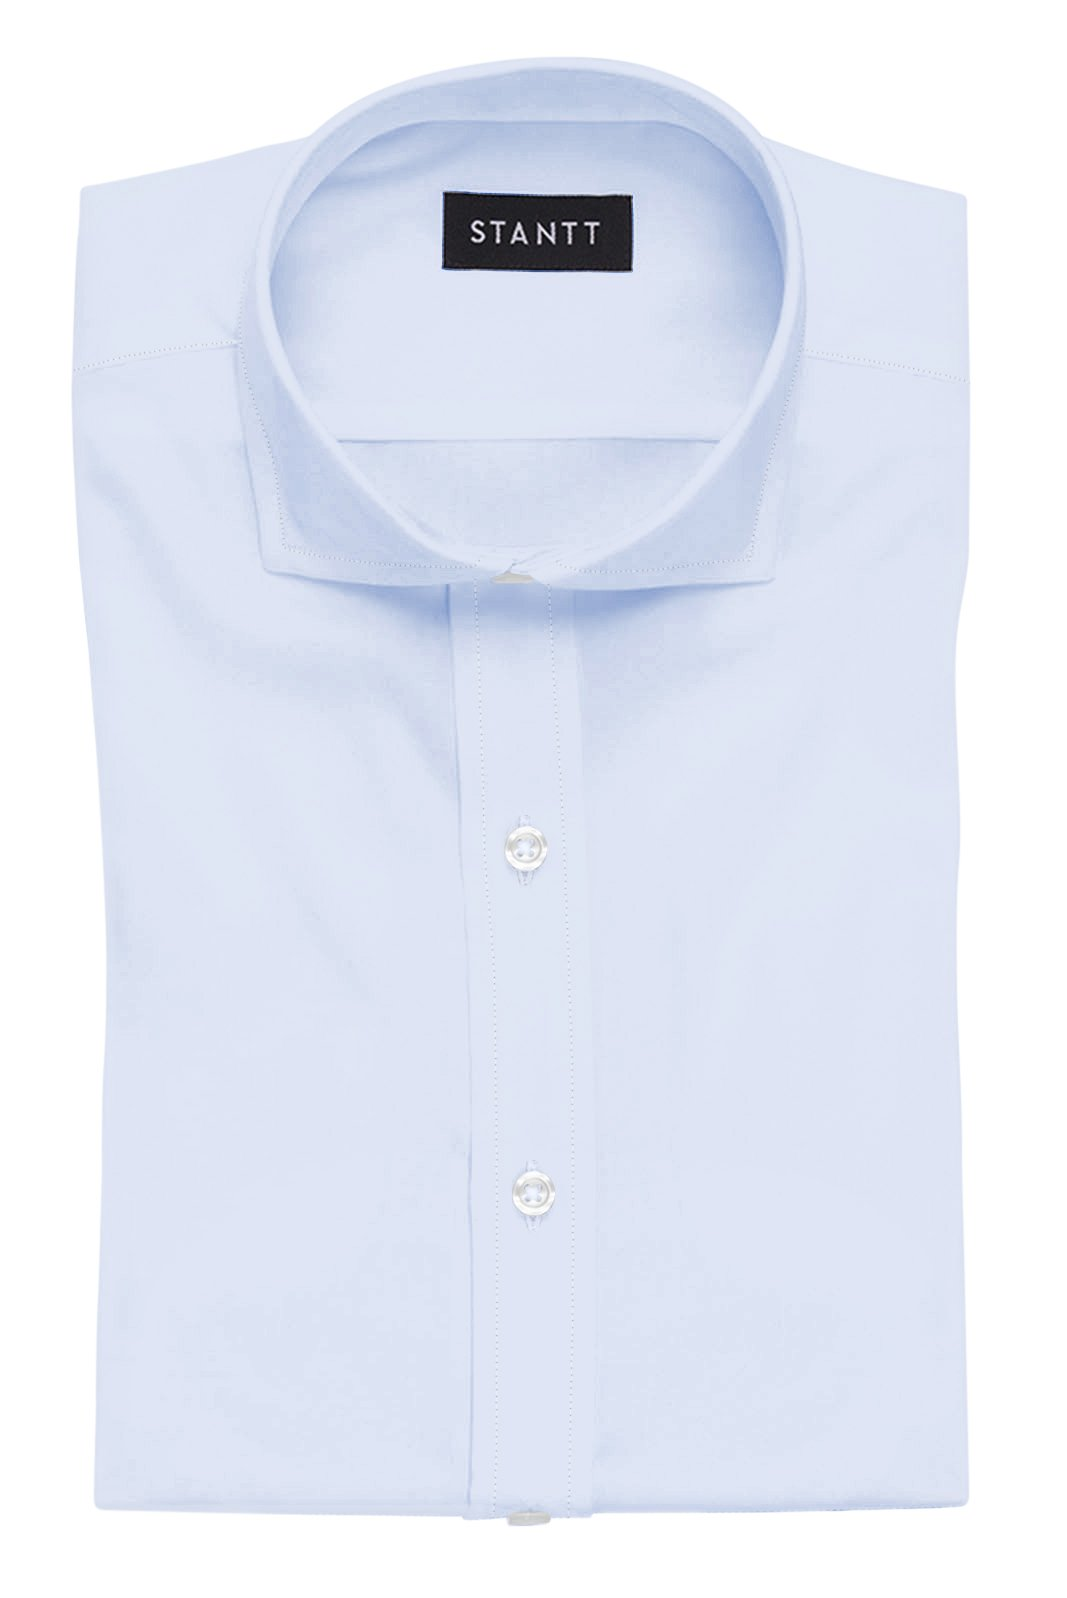 Sky Blue End-on-End: Cutaway Collar, French Cuff